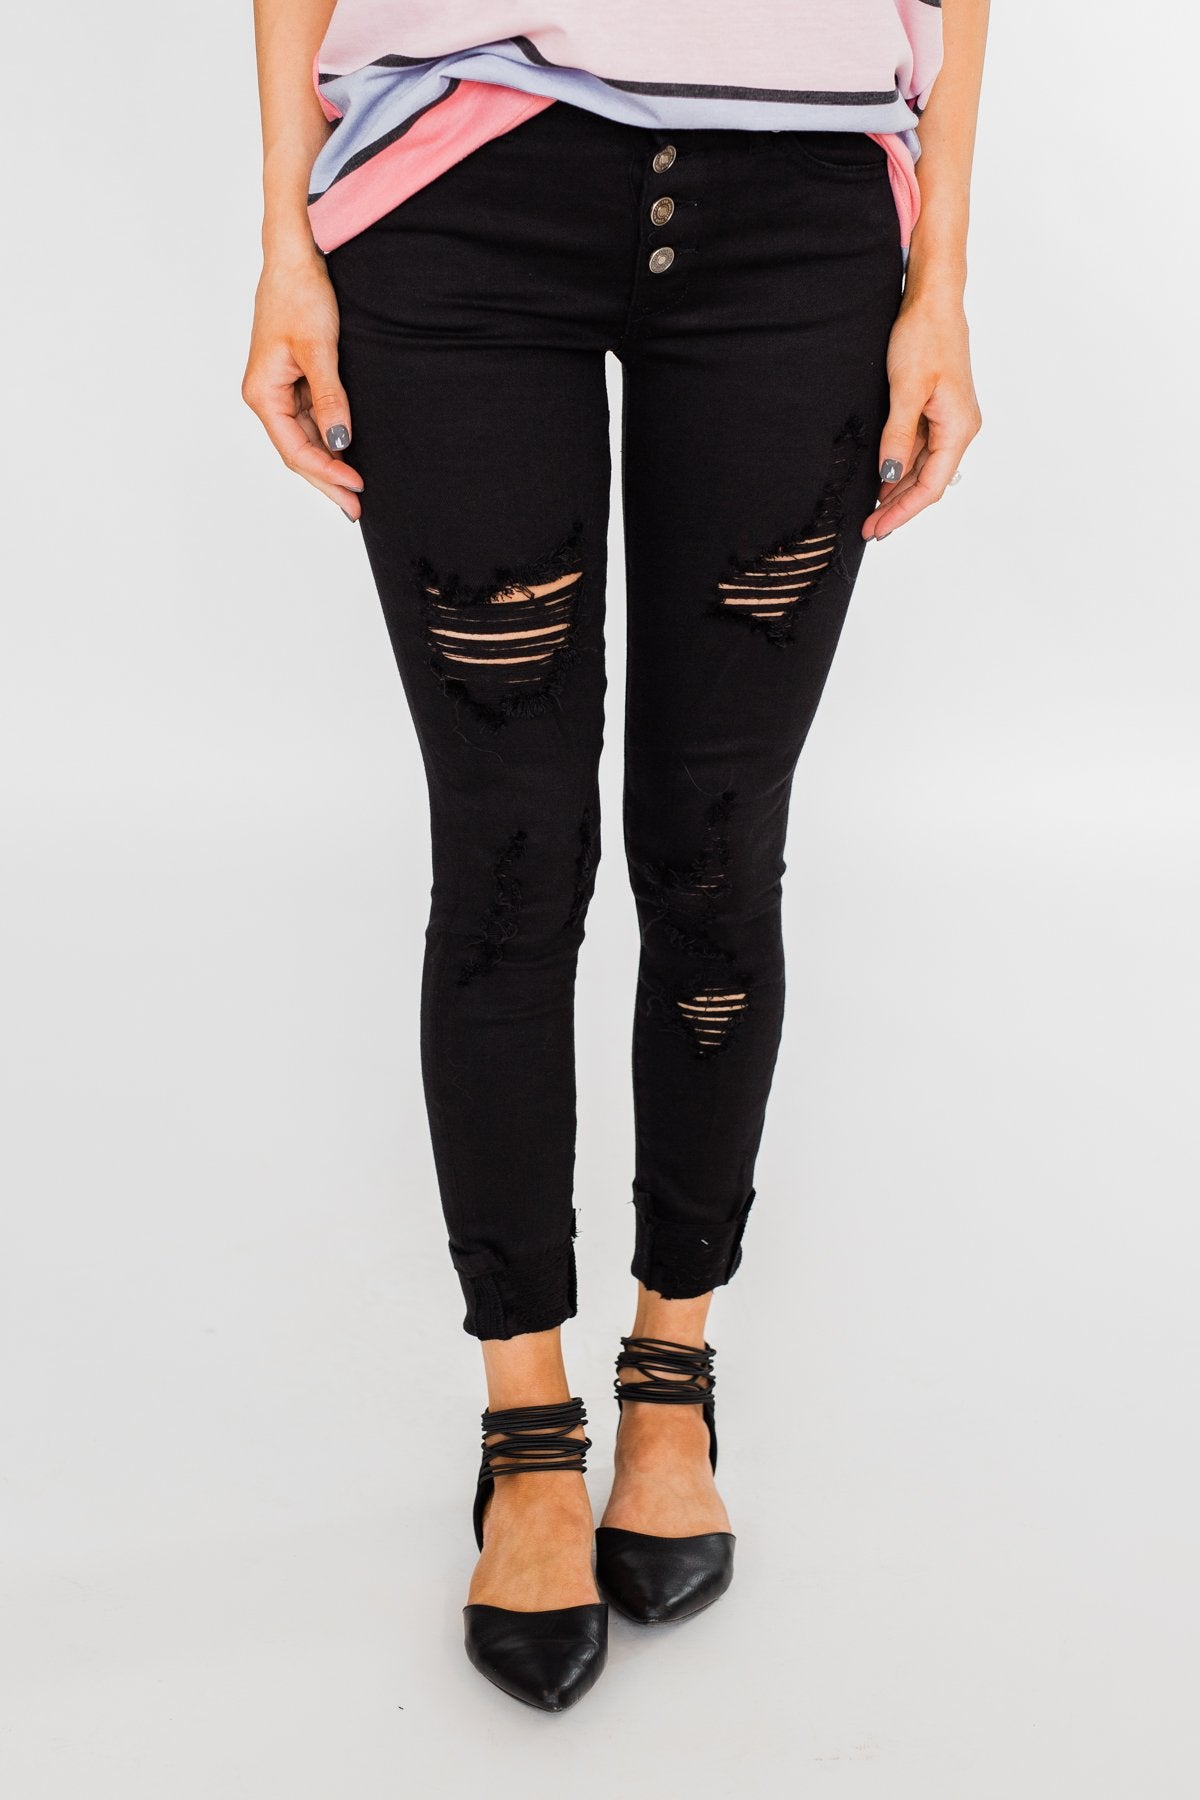 KanCan Distressed Skinny Jeans- Elsie Wash